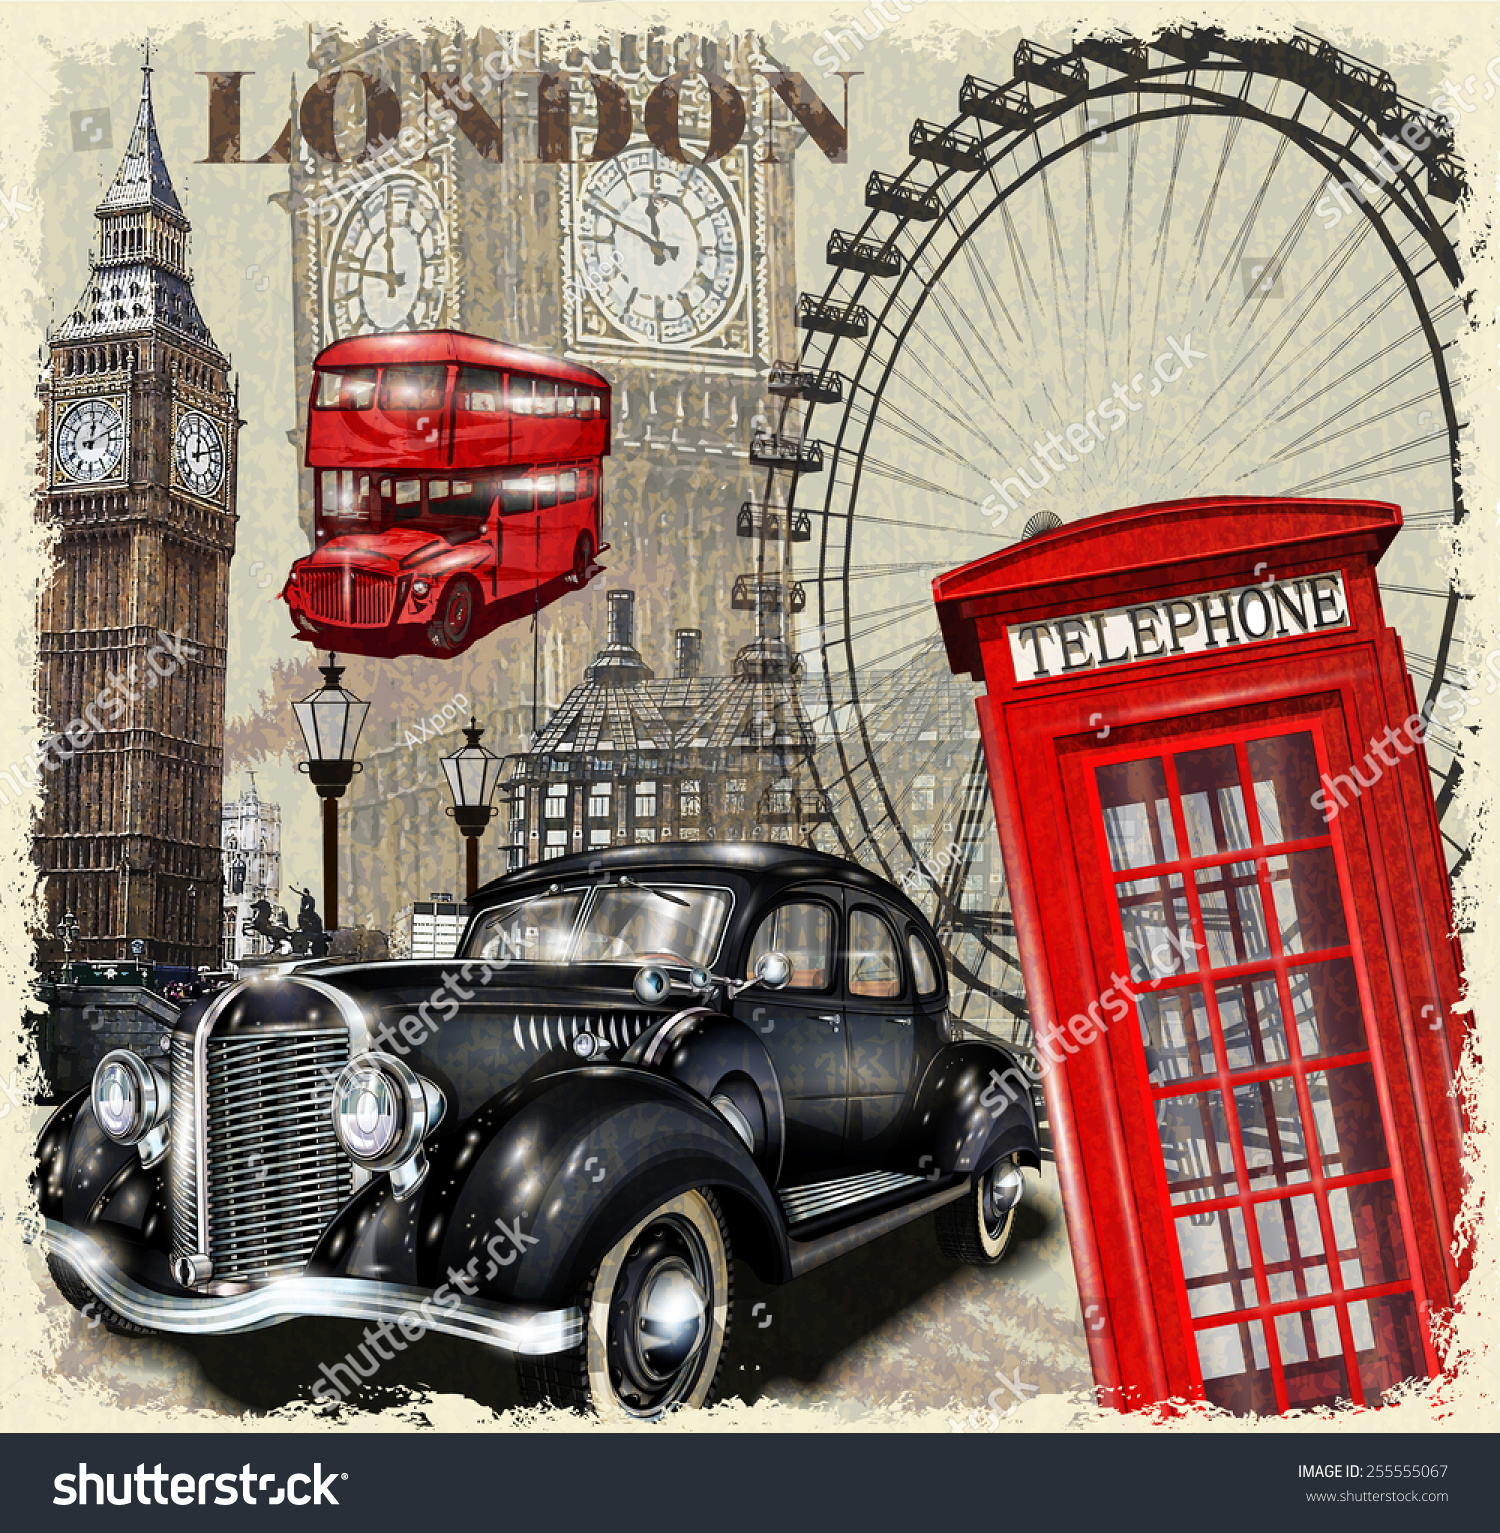 Royalty-free London vintage poster. #255555067 Stock Photo ...